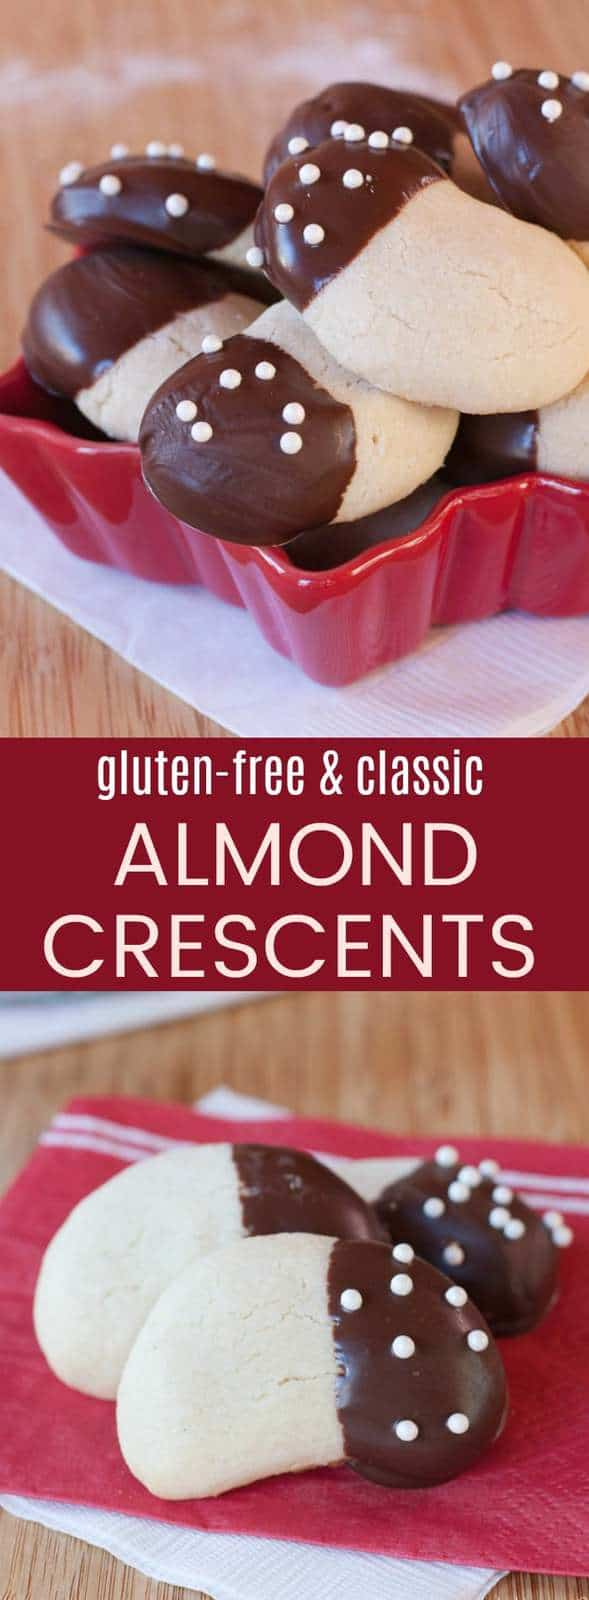 Almond Crescents - with gluten-free and classic recipes, this traditional Christmas cookie recipe is sure to be a family favorite for holiday baking! Tender and buttery, and dipped in chocolate and sprinkles! #glutenfree #glutenfreebaking #cookies #christmascookies #almondcrescents